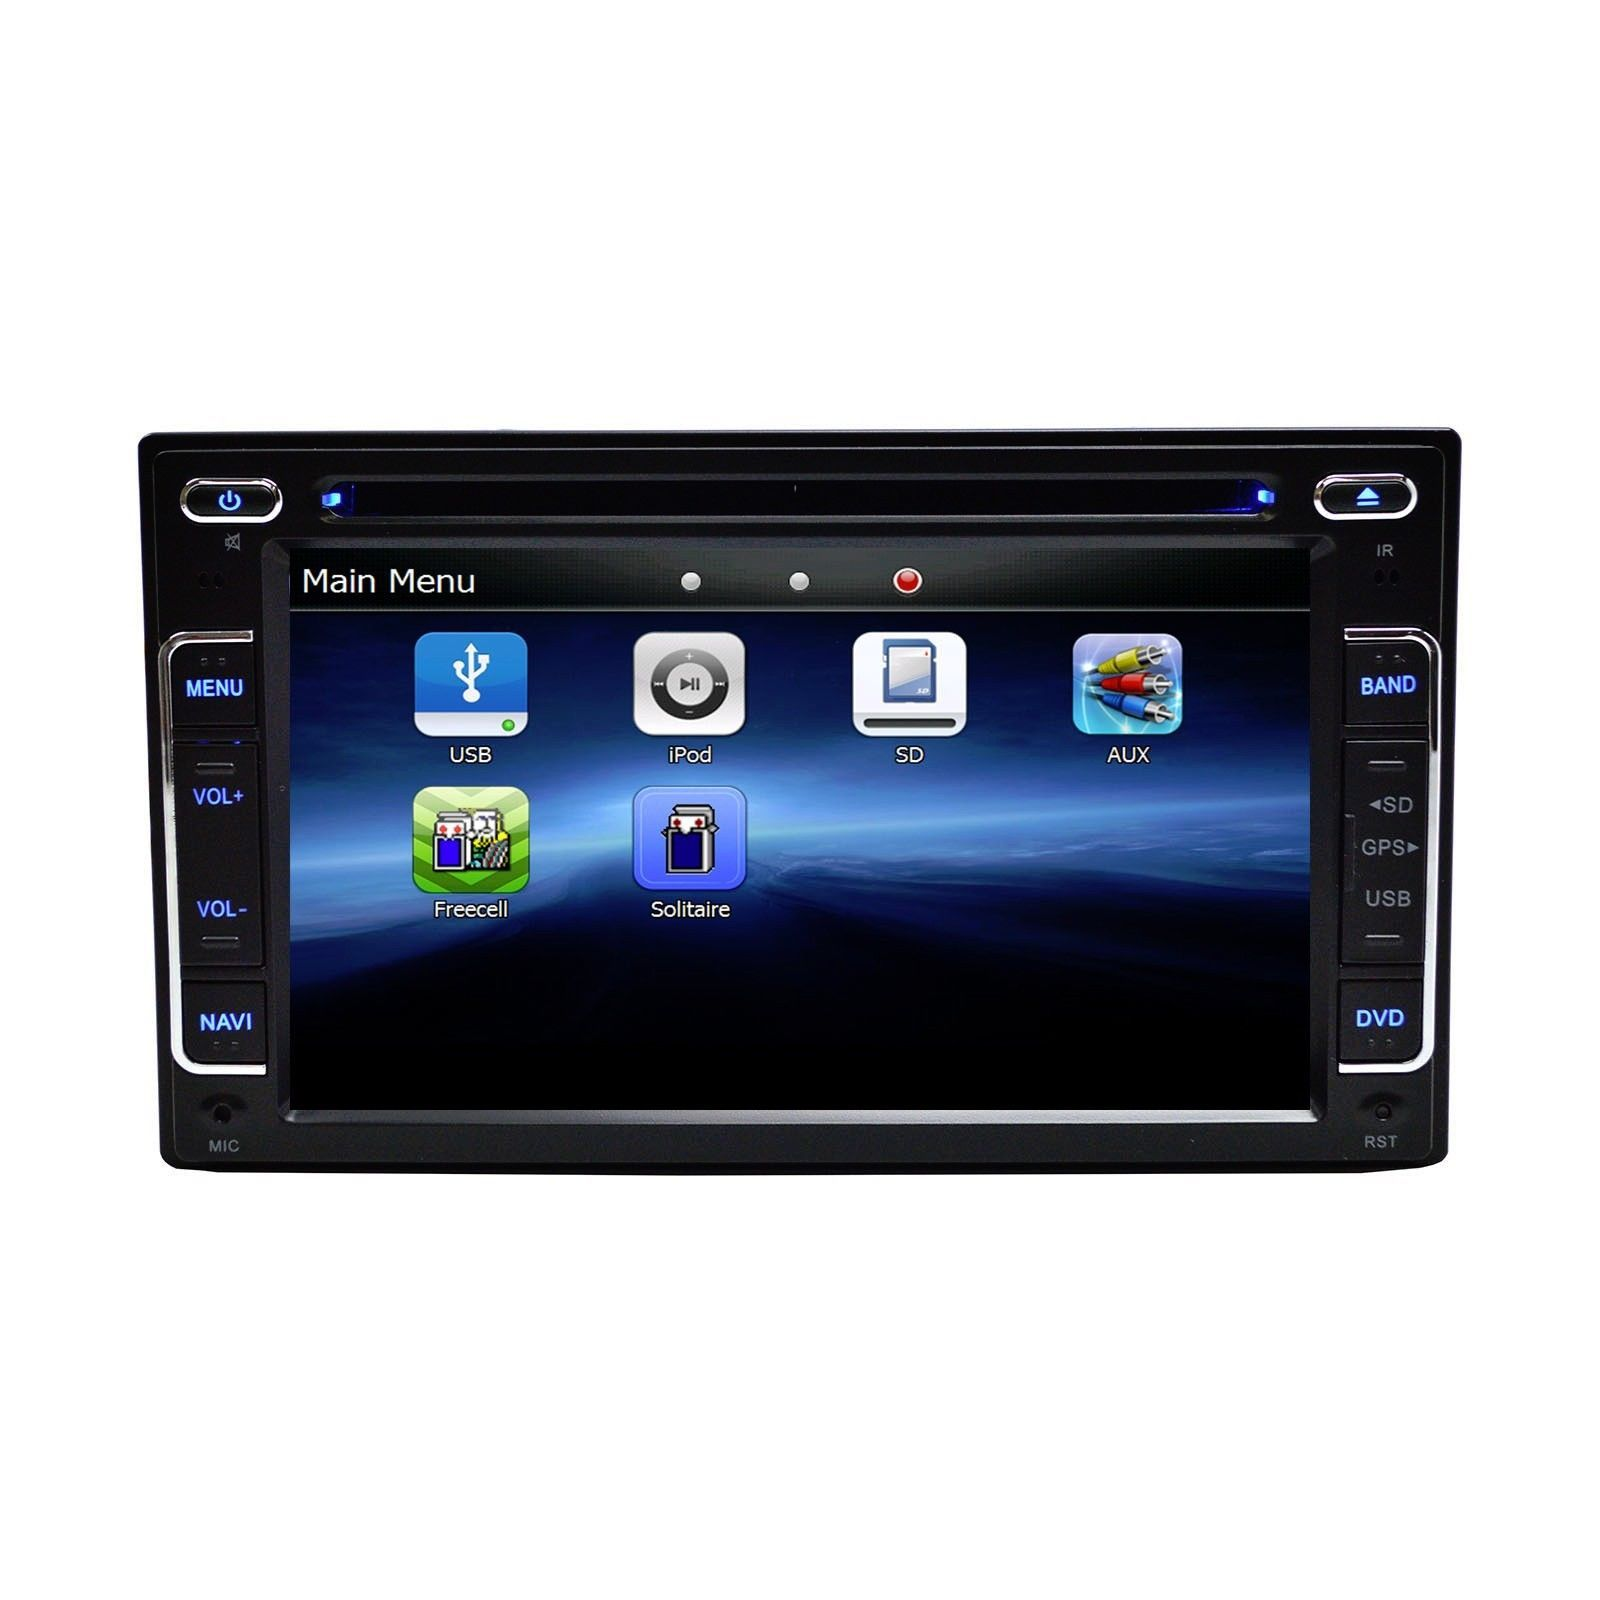 OE Fit Double Din Touchscreen Multimedia GPS Navigation Radio for Nissan Sentra